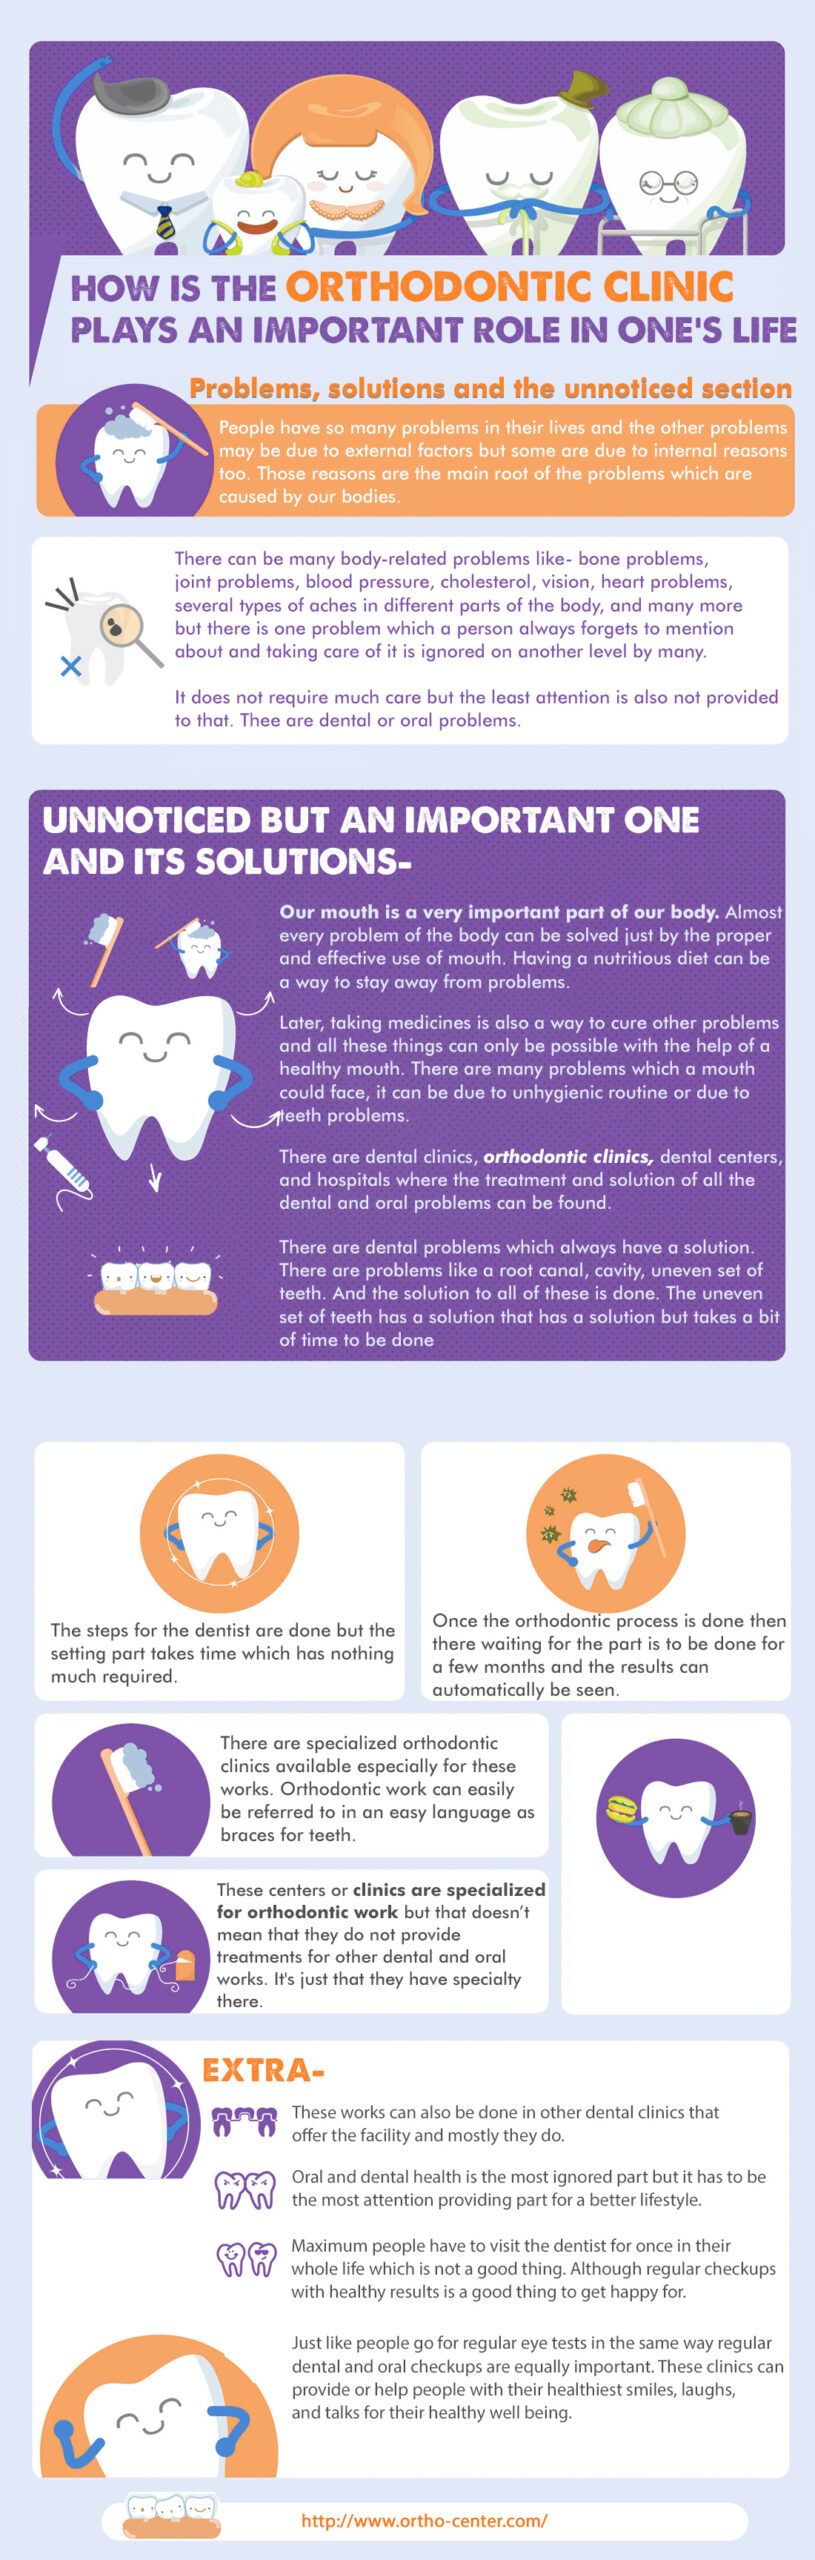 tips-to-feeling-more-comfortable-during-your-next-orthodontic-visit